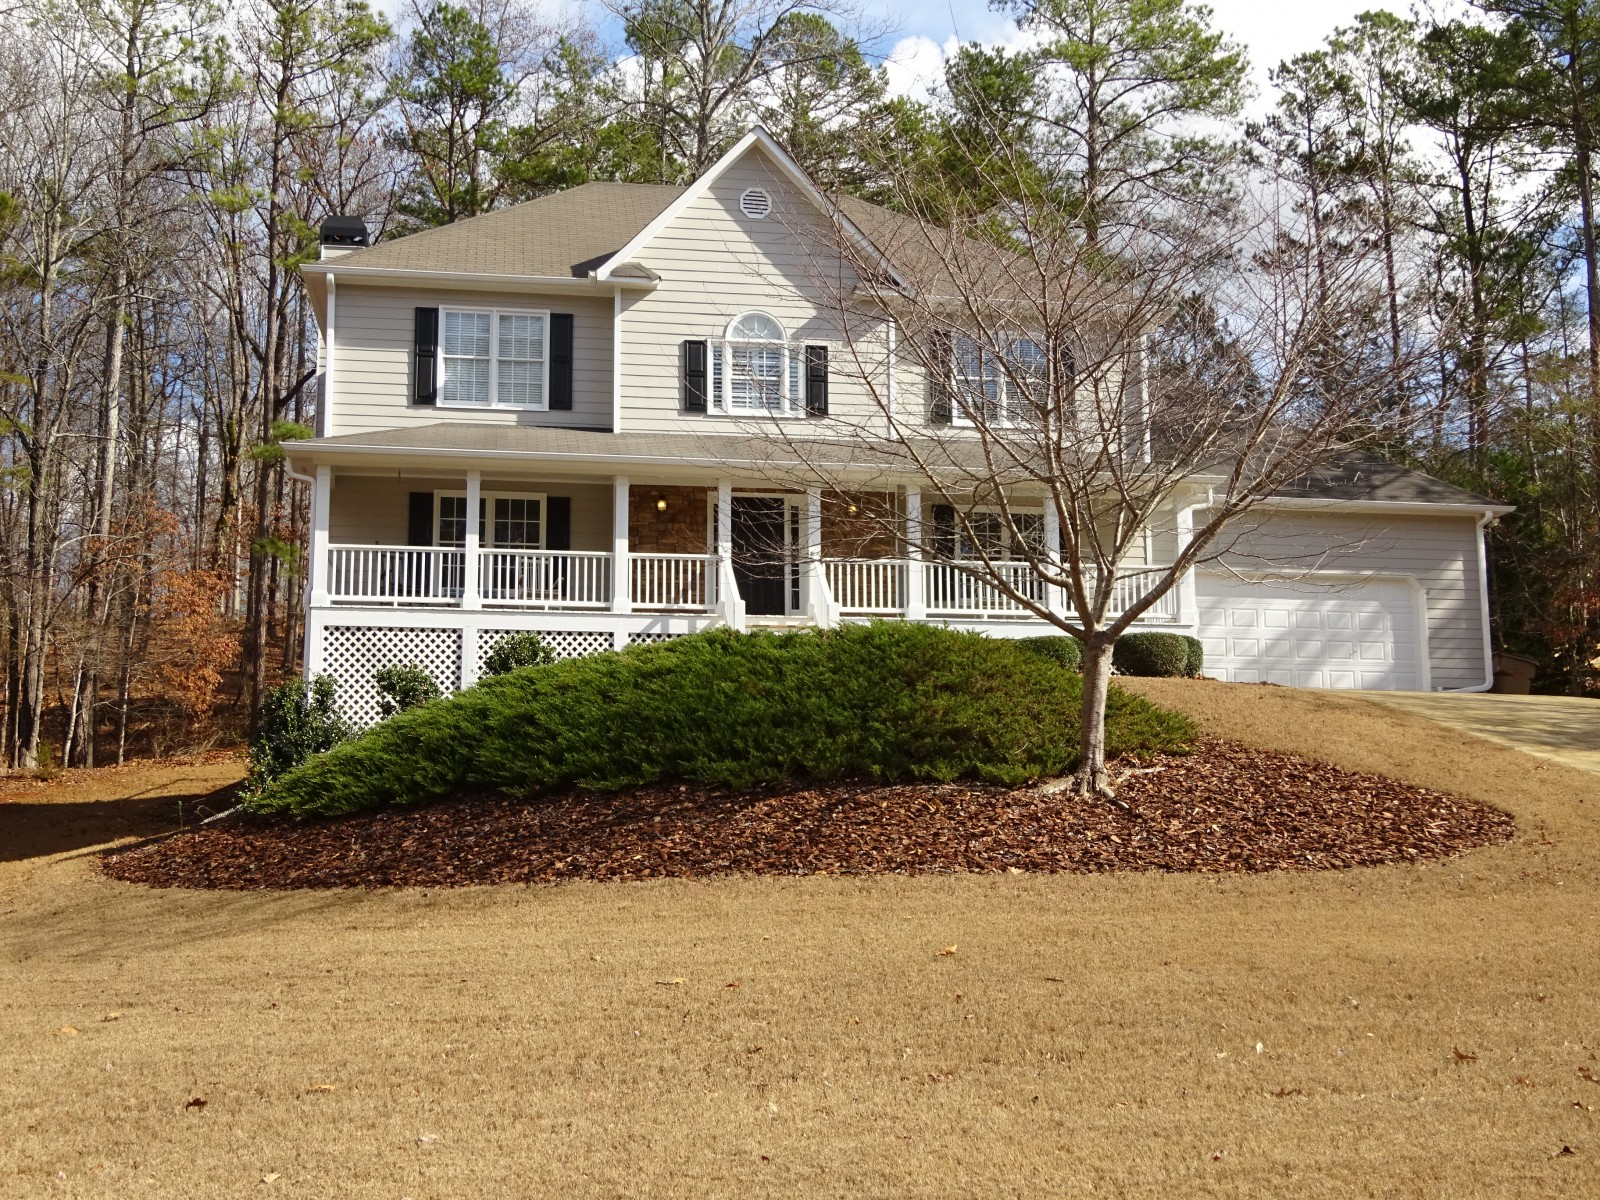 509 wisteria dr home for sale woodstock ga for Homes for sale in woodstock